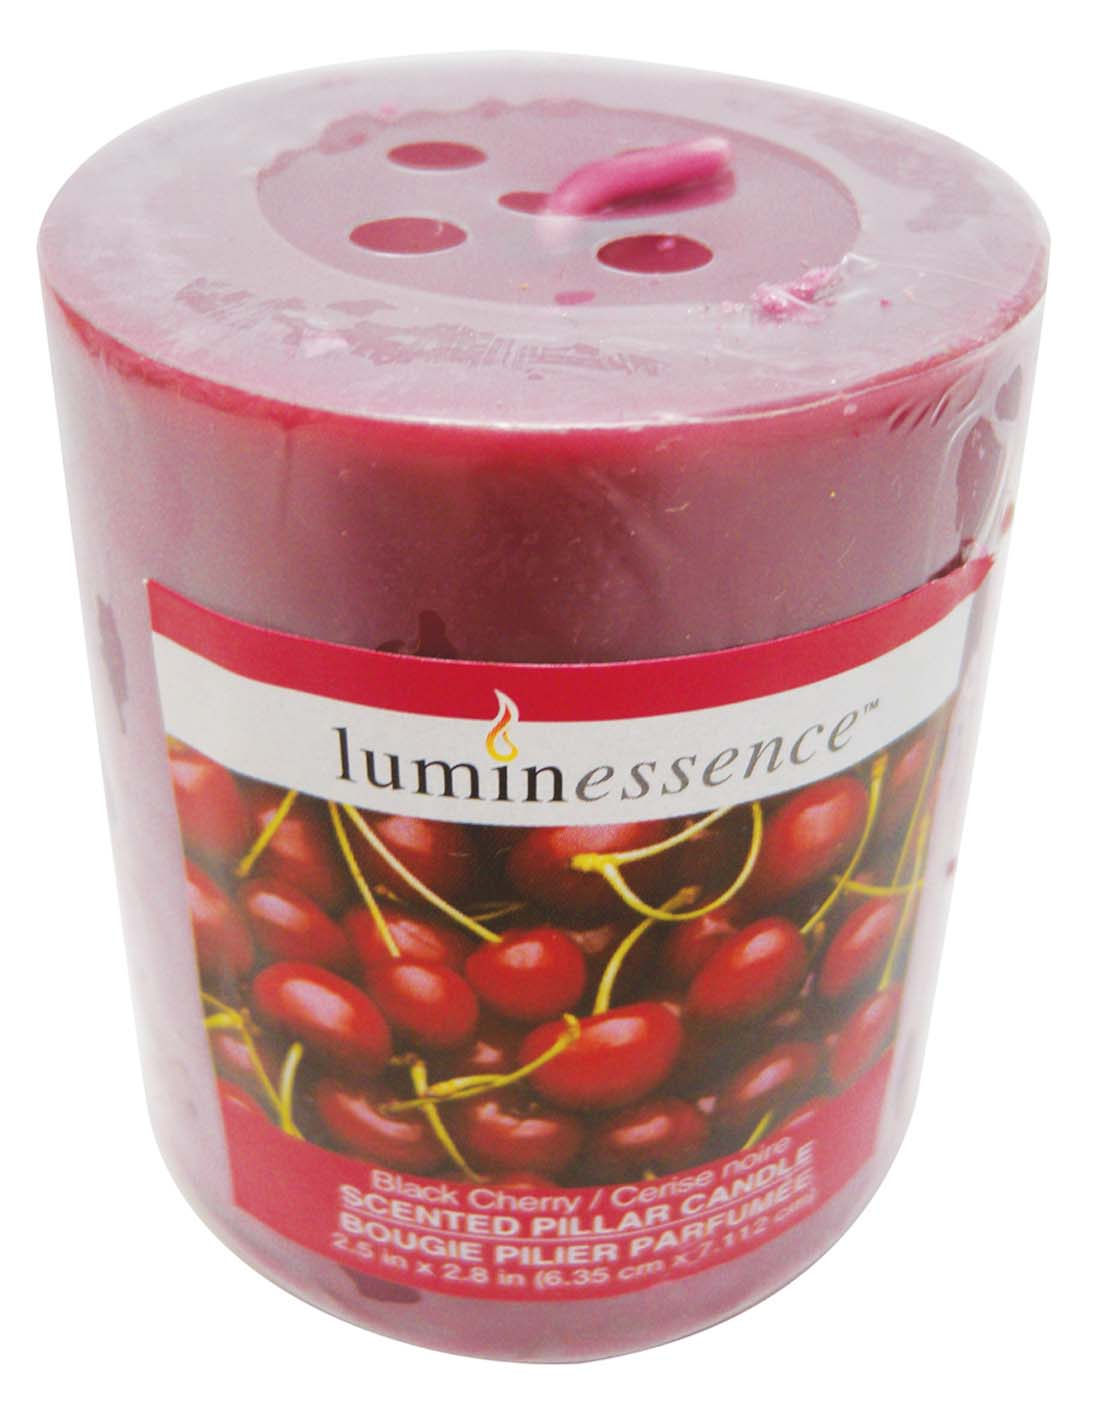 View LUMINESSENCE SCENTED PILLAR CANDLE 3 X 3 INCH BLACK CHERRY